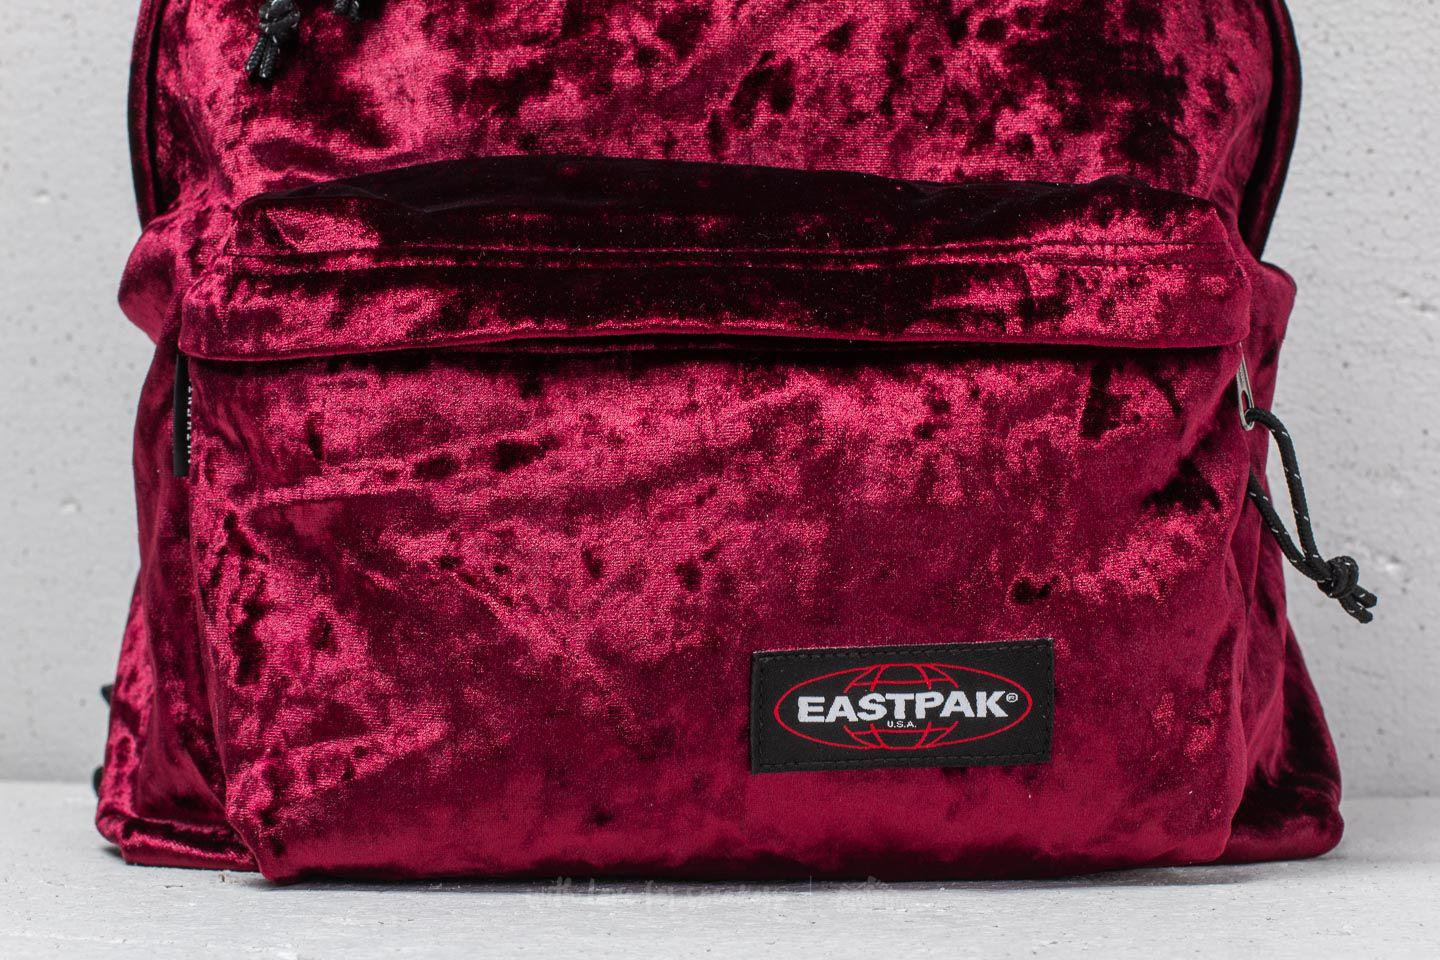 Crushed Red Padded Merlot Footshop Backpack Lyst In Pak'r Eastpak qw61RfB